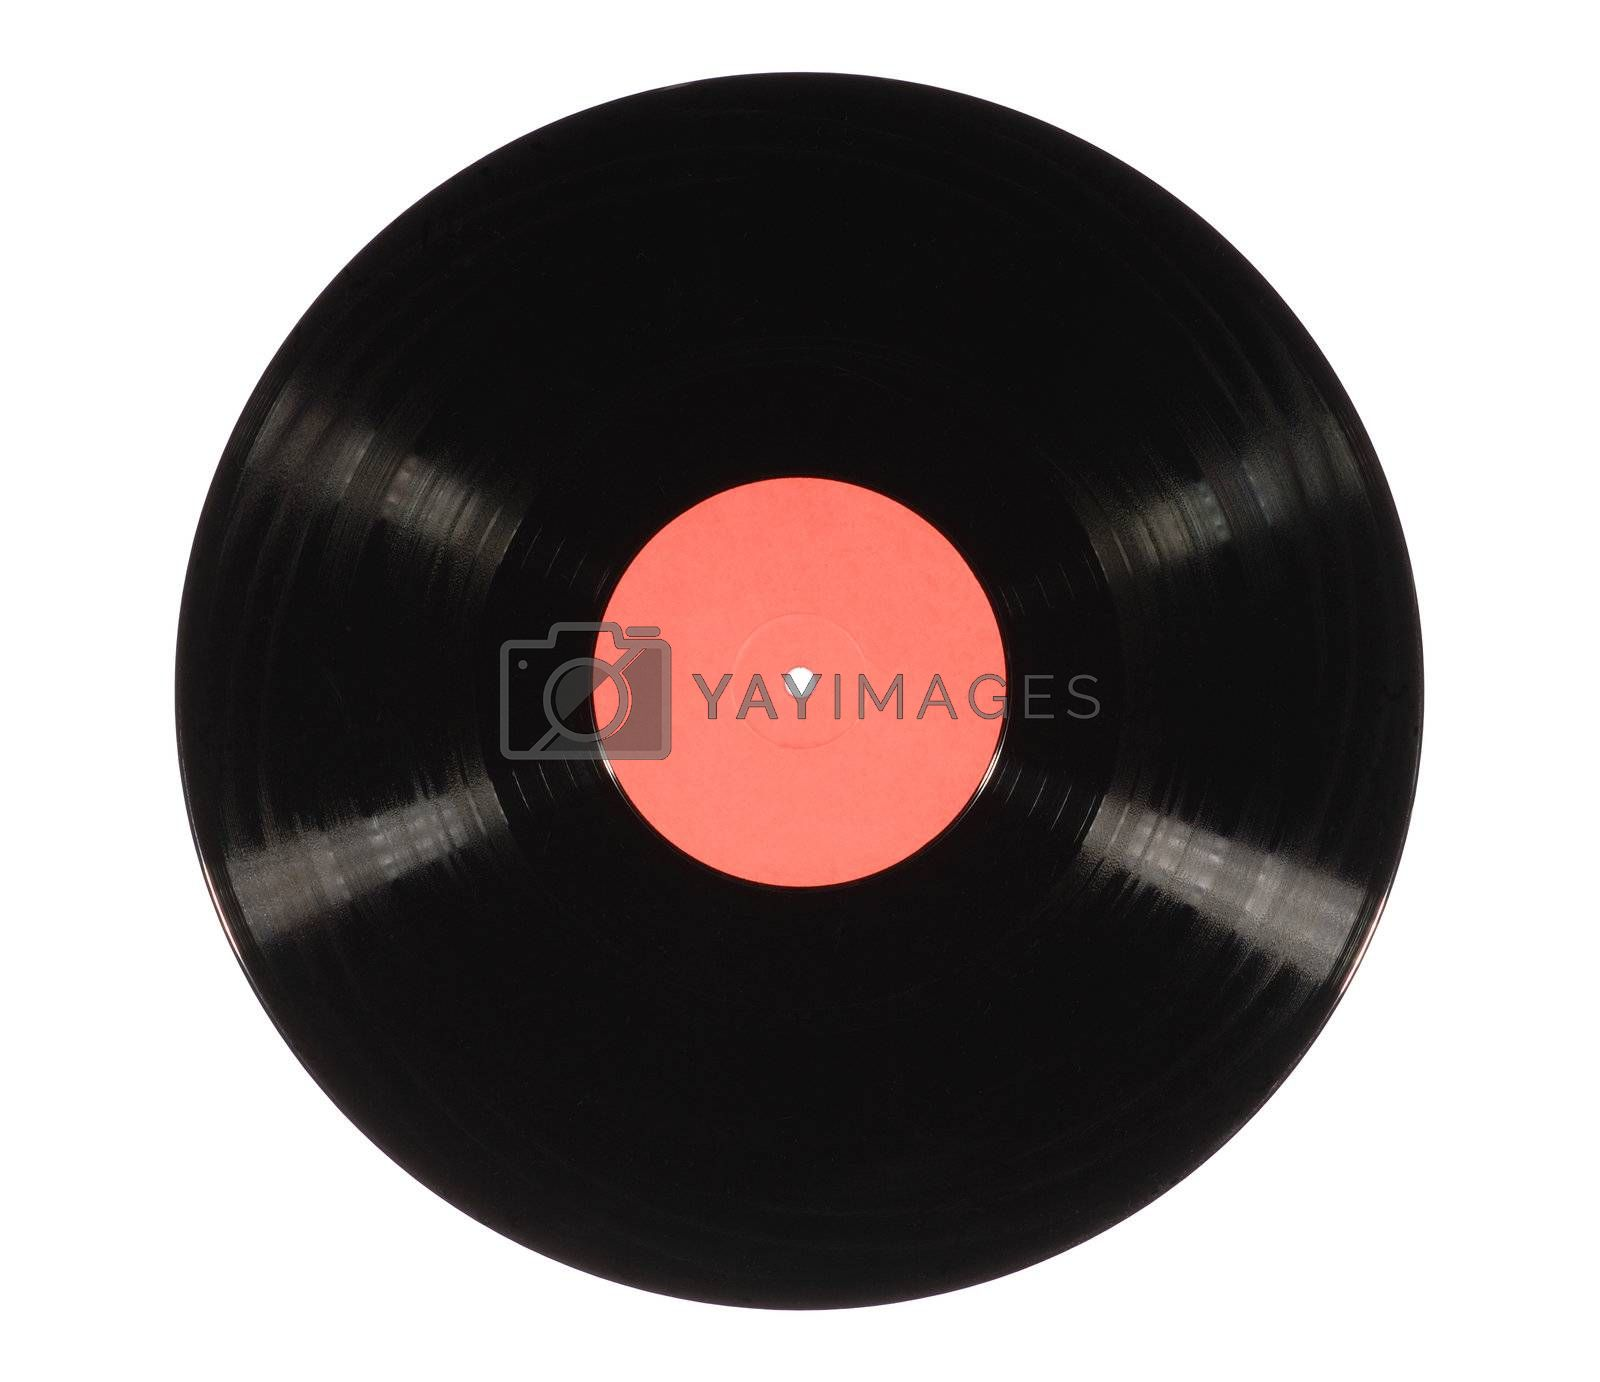 Old black vinyl record isolated on white